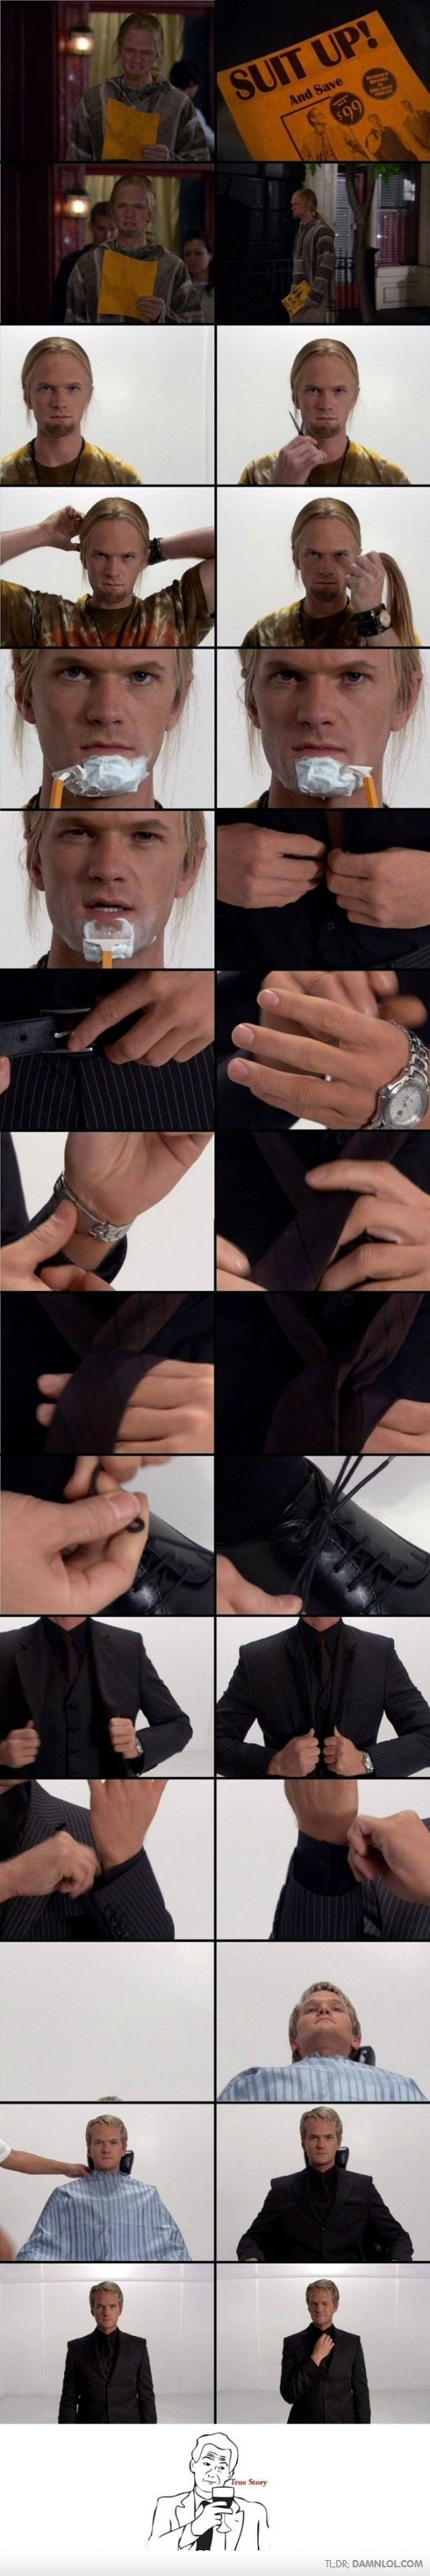 How Barney Stinson suited up.